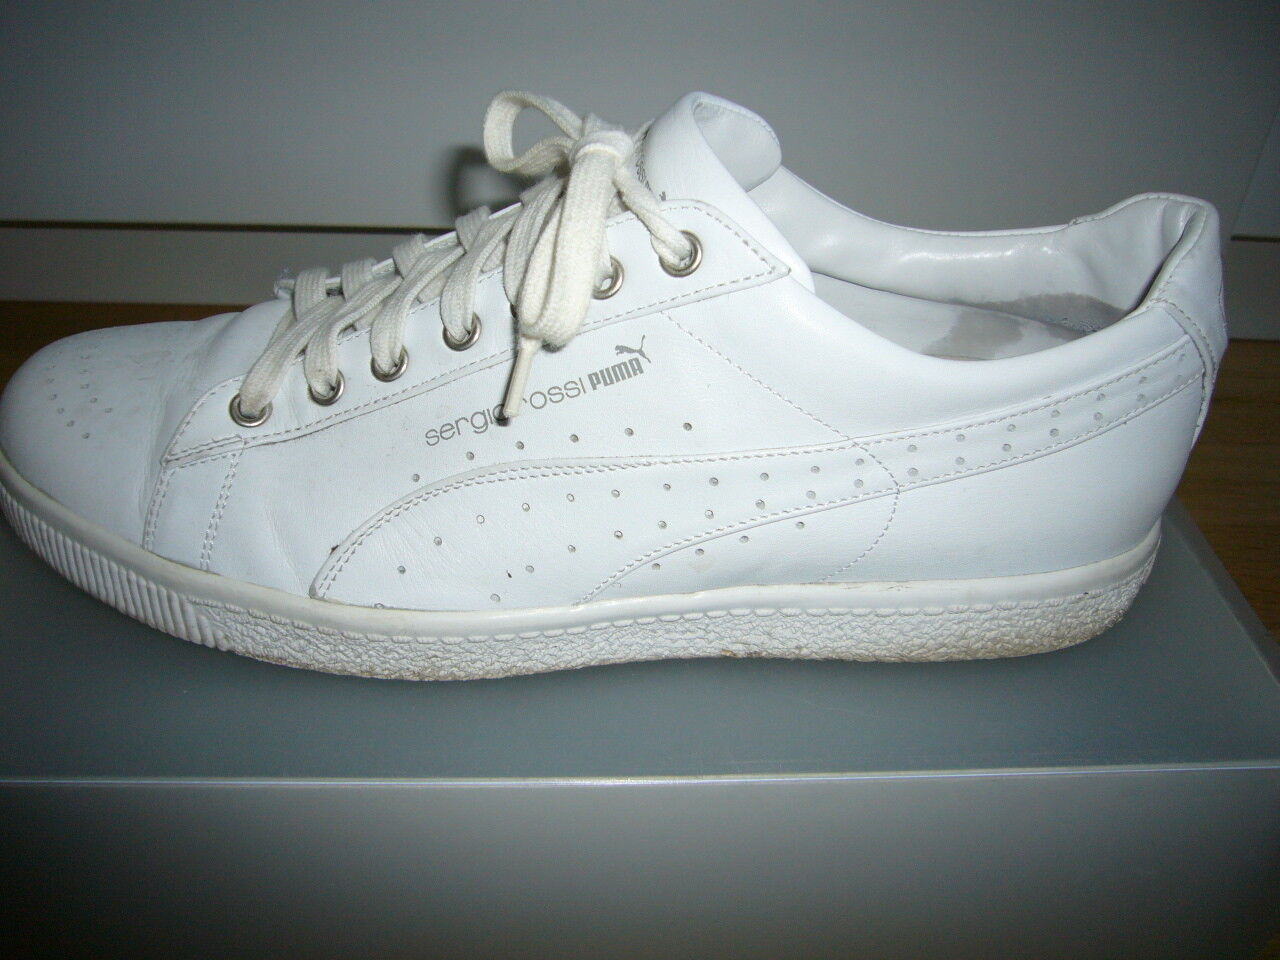 PUMA Sergio Rossi SR Clyde  weiss white